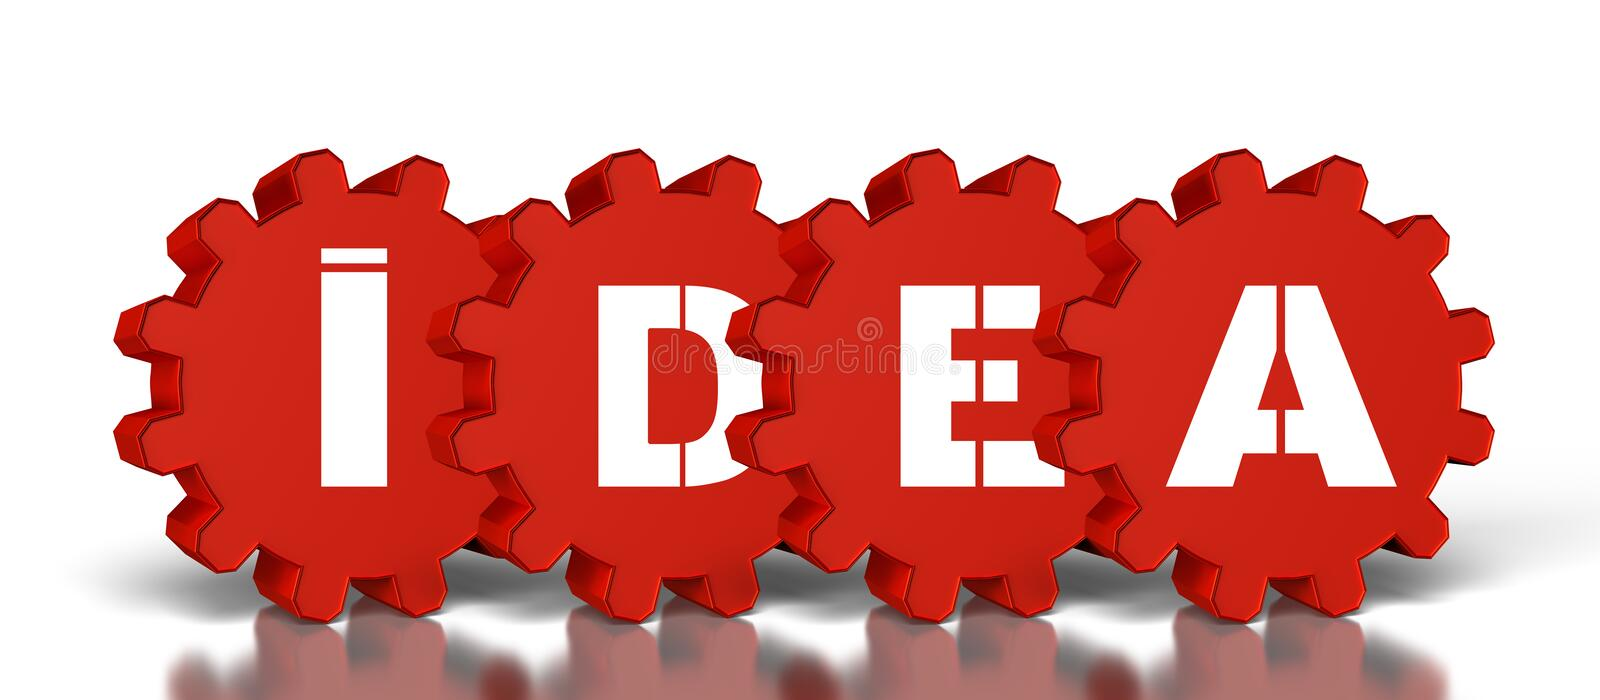 Download Gears With Idea Text Stock Illustration - Image: 39323980